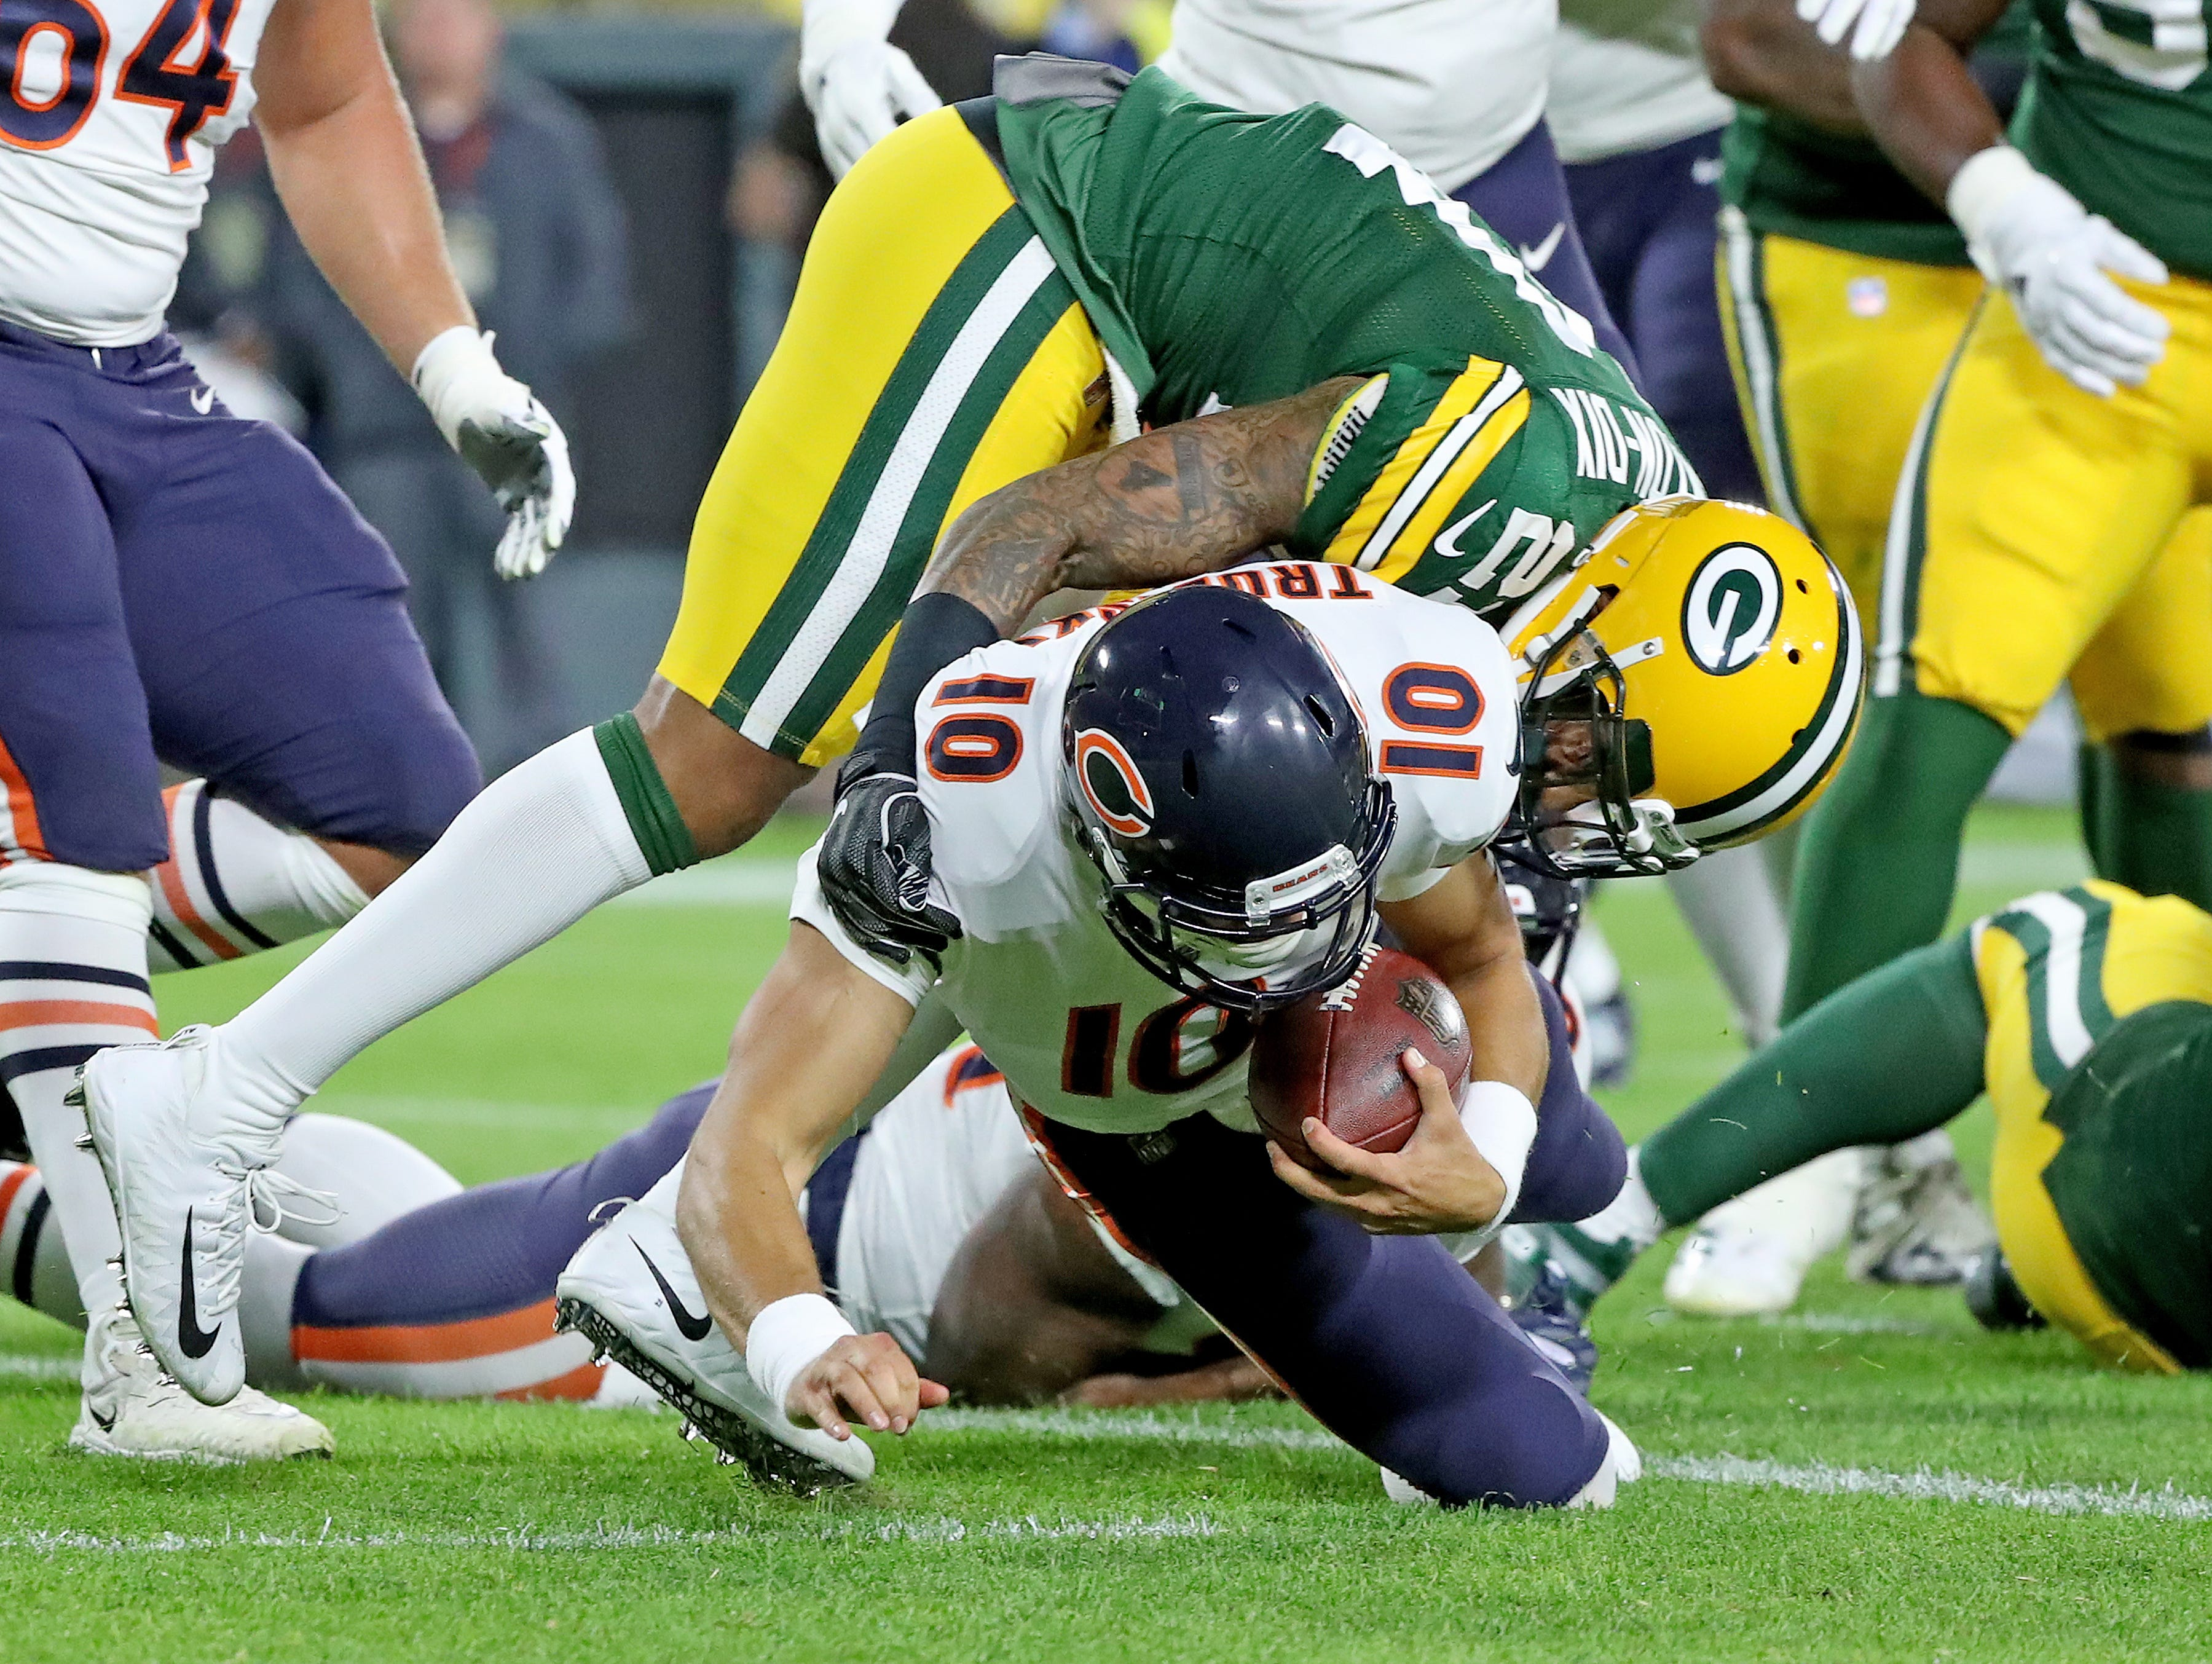 Green Bay Packers defensive back Ha Ha Clinton-Dix (21) can't stop quarterback Mitchell Trubisky (10) from scoring a touchdpwn in the first quarter against the Chicago Bears Sunday, September 9, 2018 at Lambeau Field in Green Bay, Wis. Jim Matthews/USA TODAY NETWORK-Wisconsin